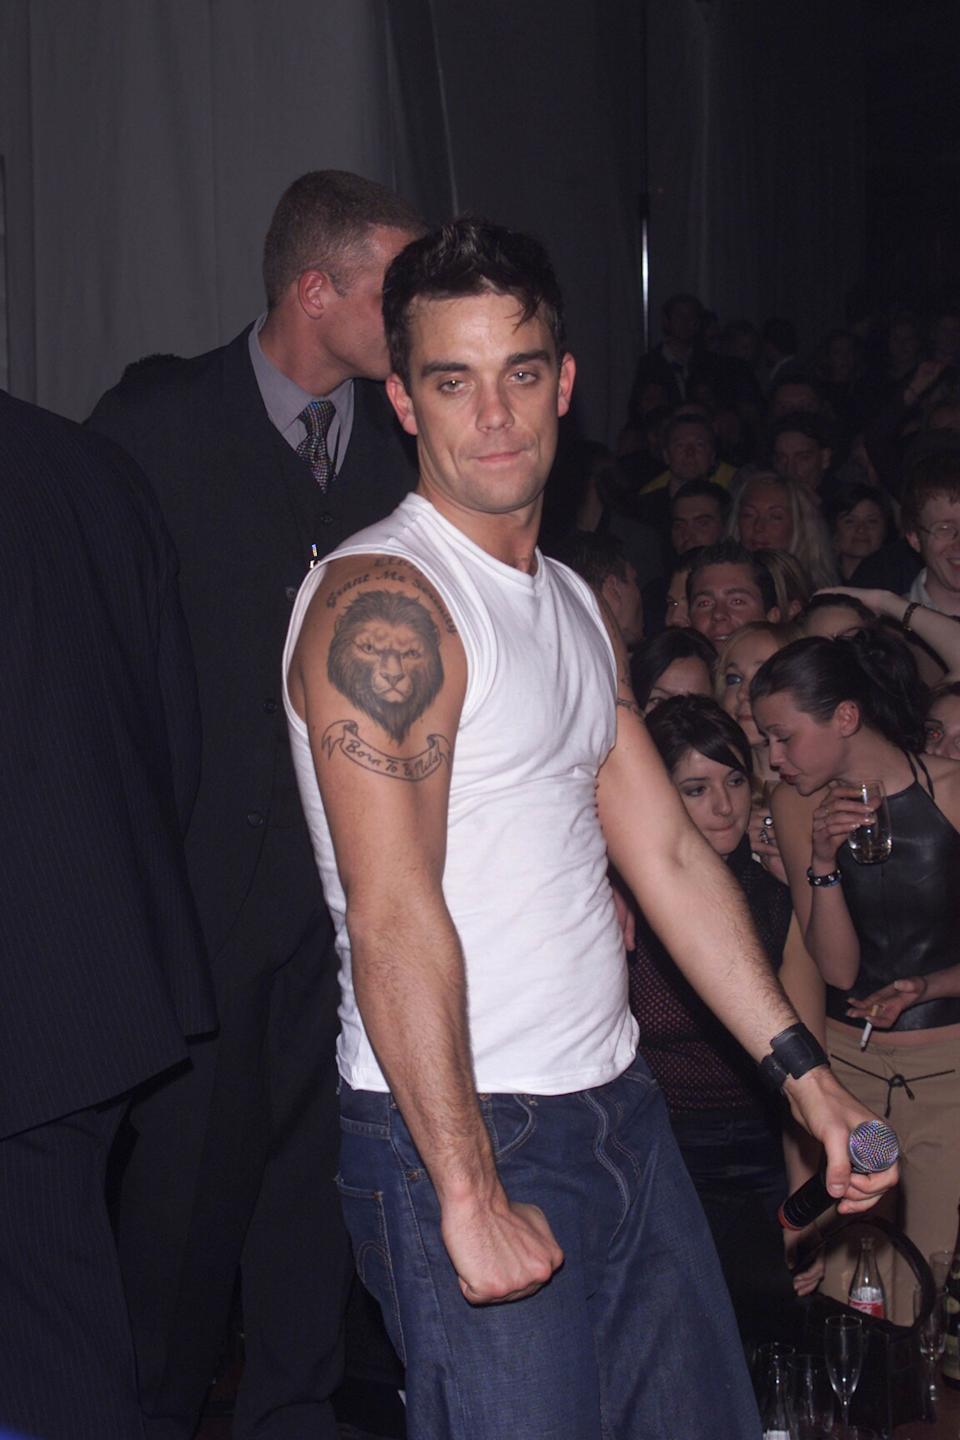 STOCKHOLM - NOVEMBER 16: British pop star Robbie Williams celebrates at the MTV after show party at the Grand Hotel on November 16, 2000 in Stockholm, Sweden. (Photo by Dave Hogan/Getty Images)